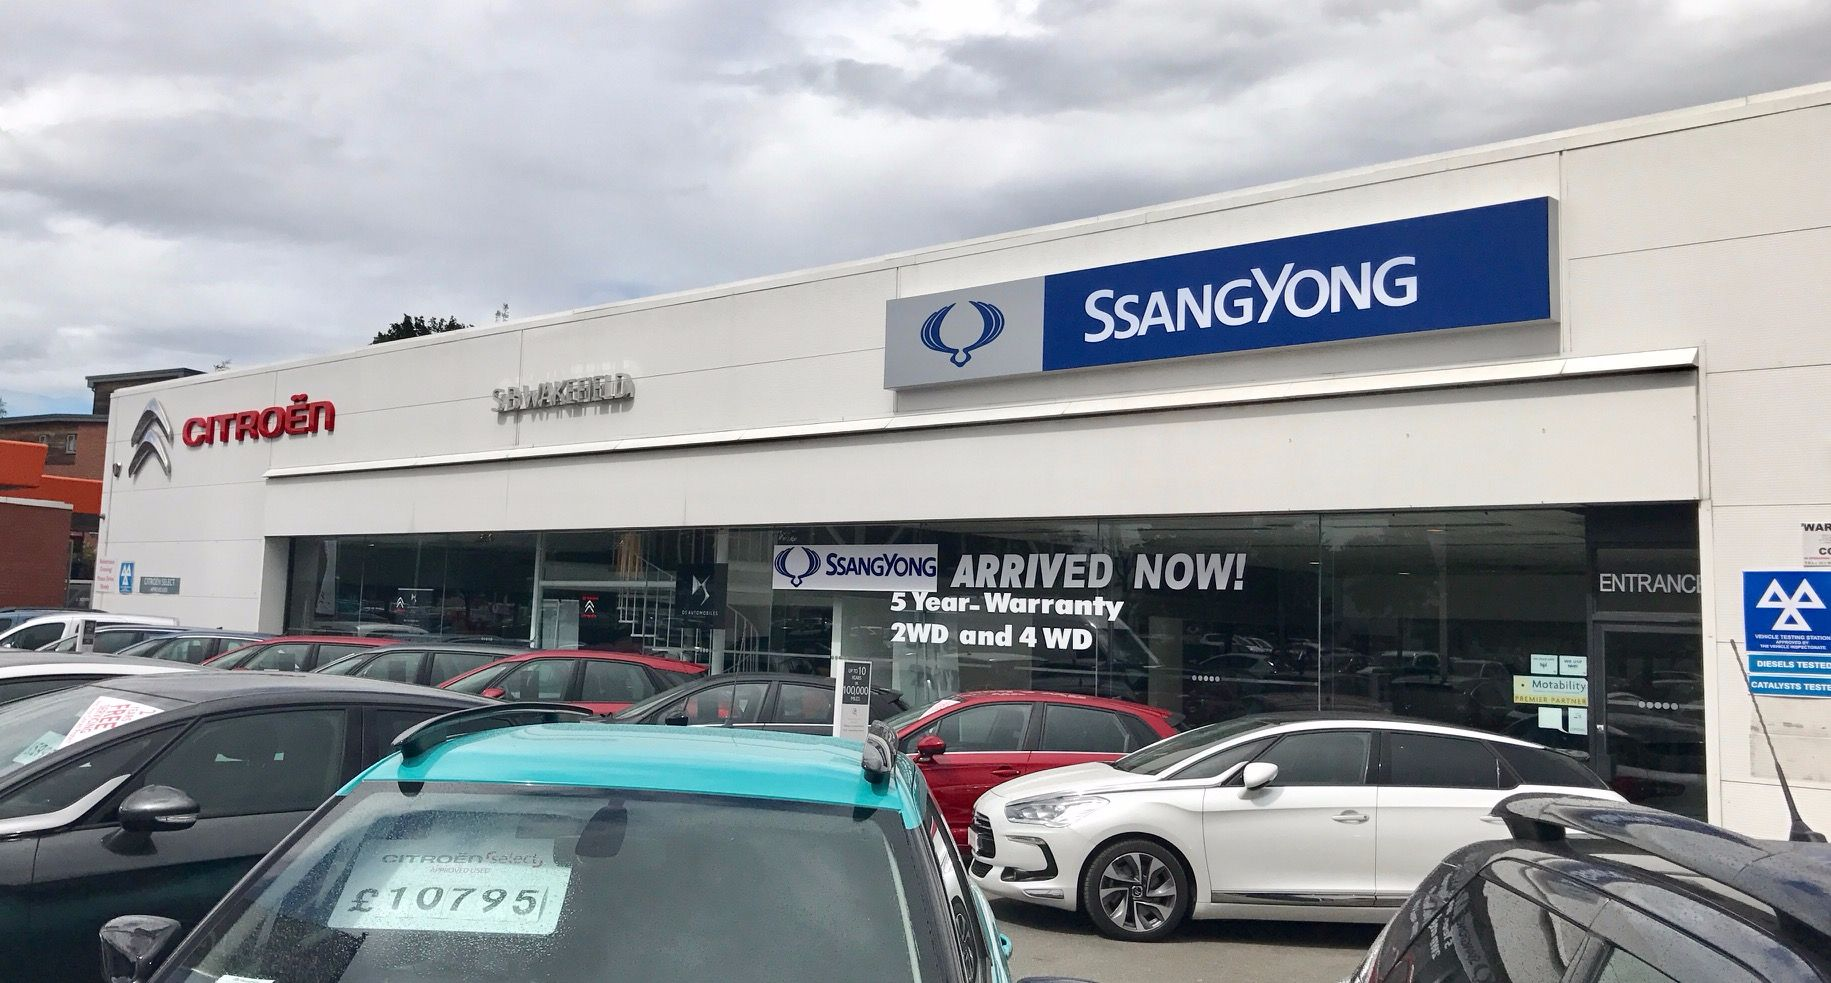 SSANGYONG APPOINTS NEW DEALER FOR WAKEFIELD •	SB Wakefield joins the SsangYong network •	Six model range all backed by a 5-year limitless mileage warranty